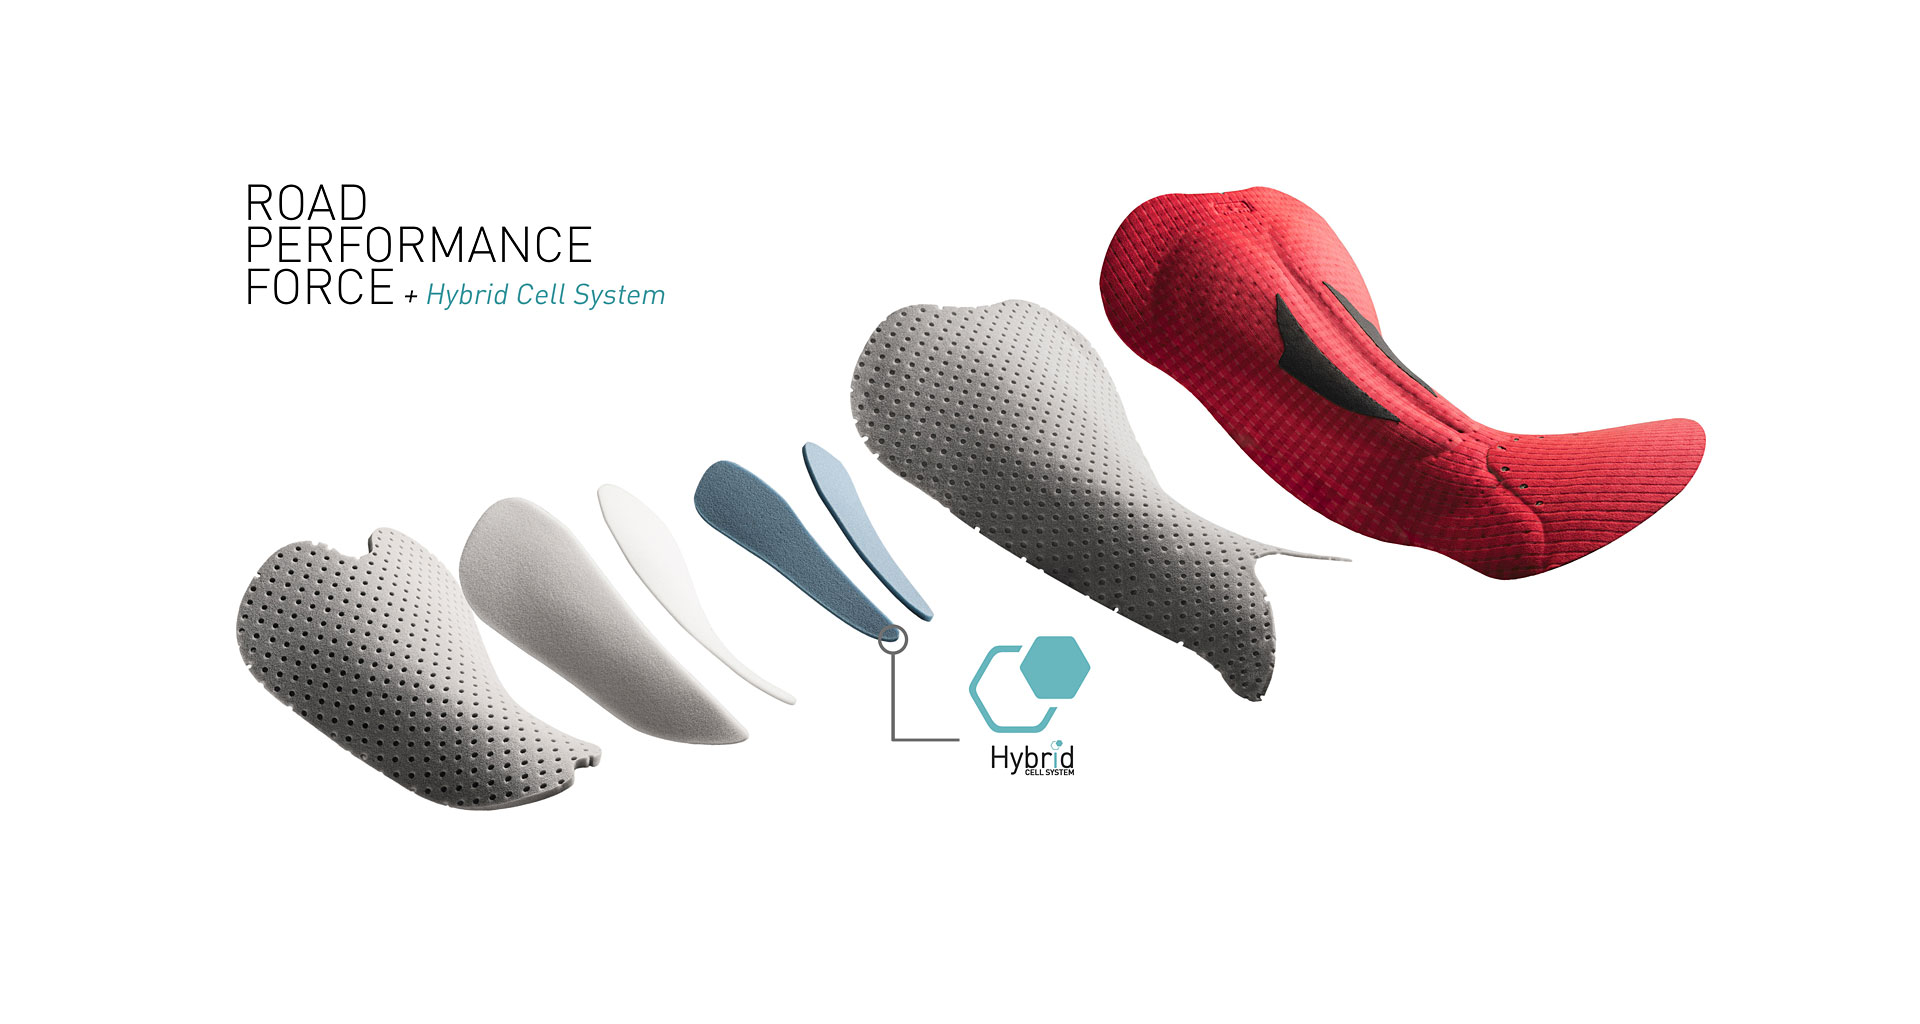 road performance force with hybrid cell system cycling pad